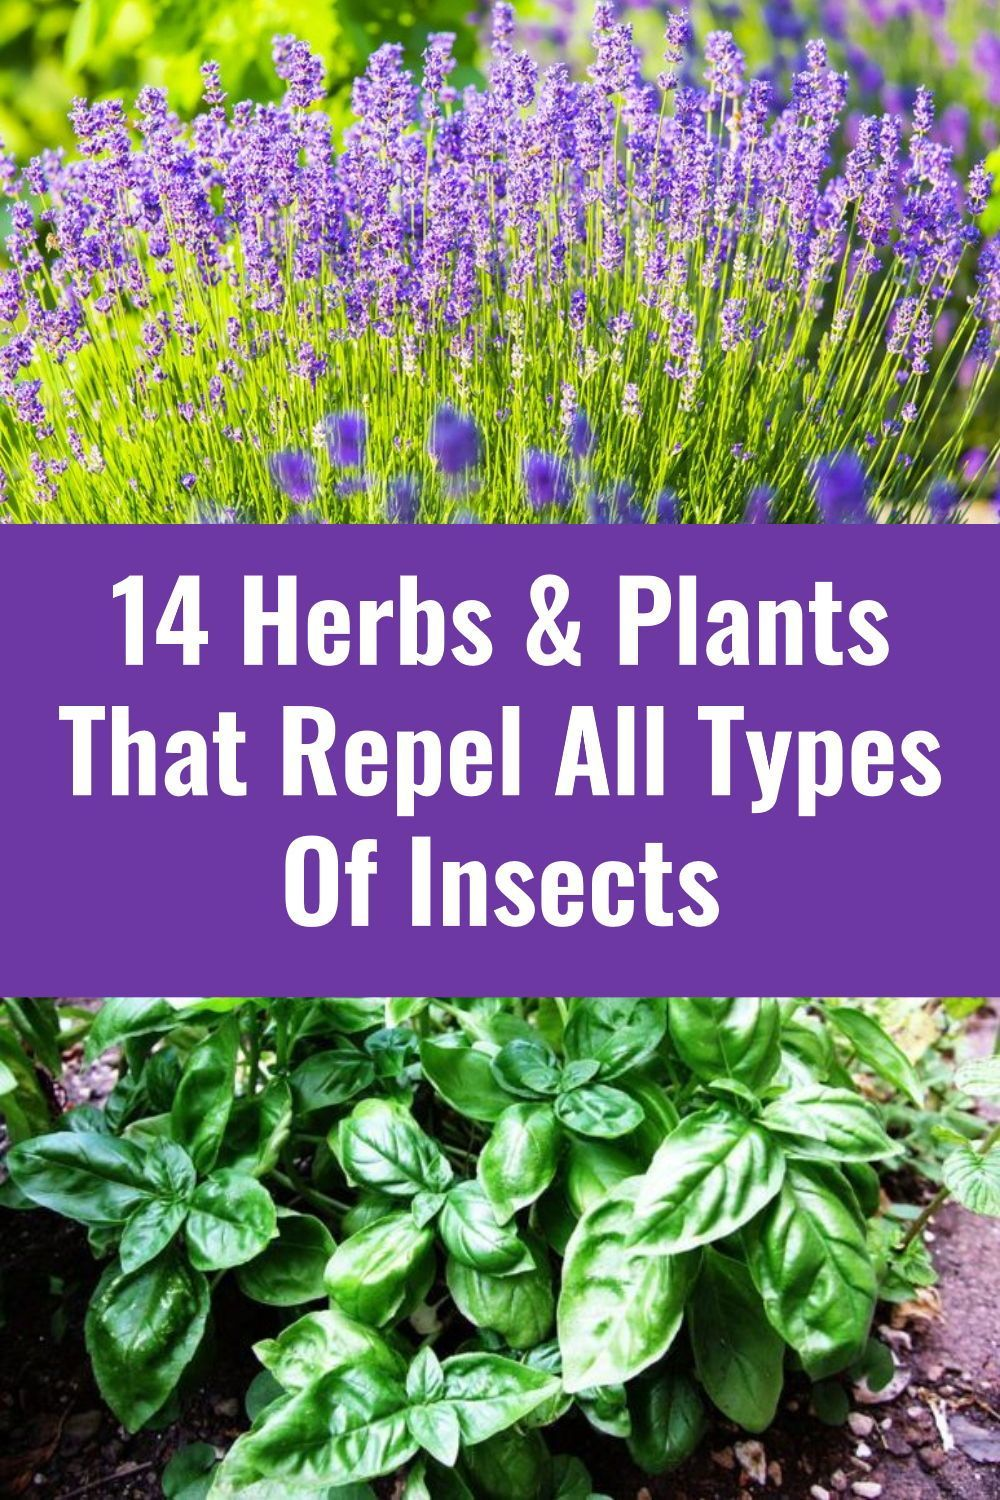 14 Herbs Plants That Repel All Types Of Insects In 2020 Planting Herbs Herbs Plants